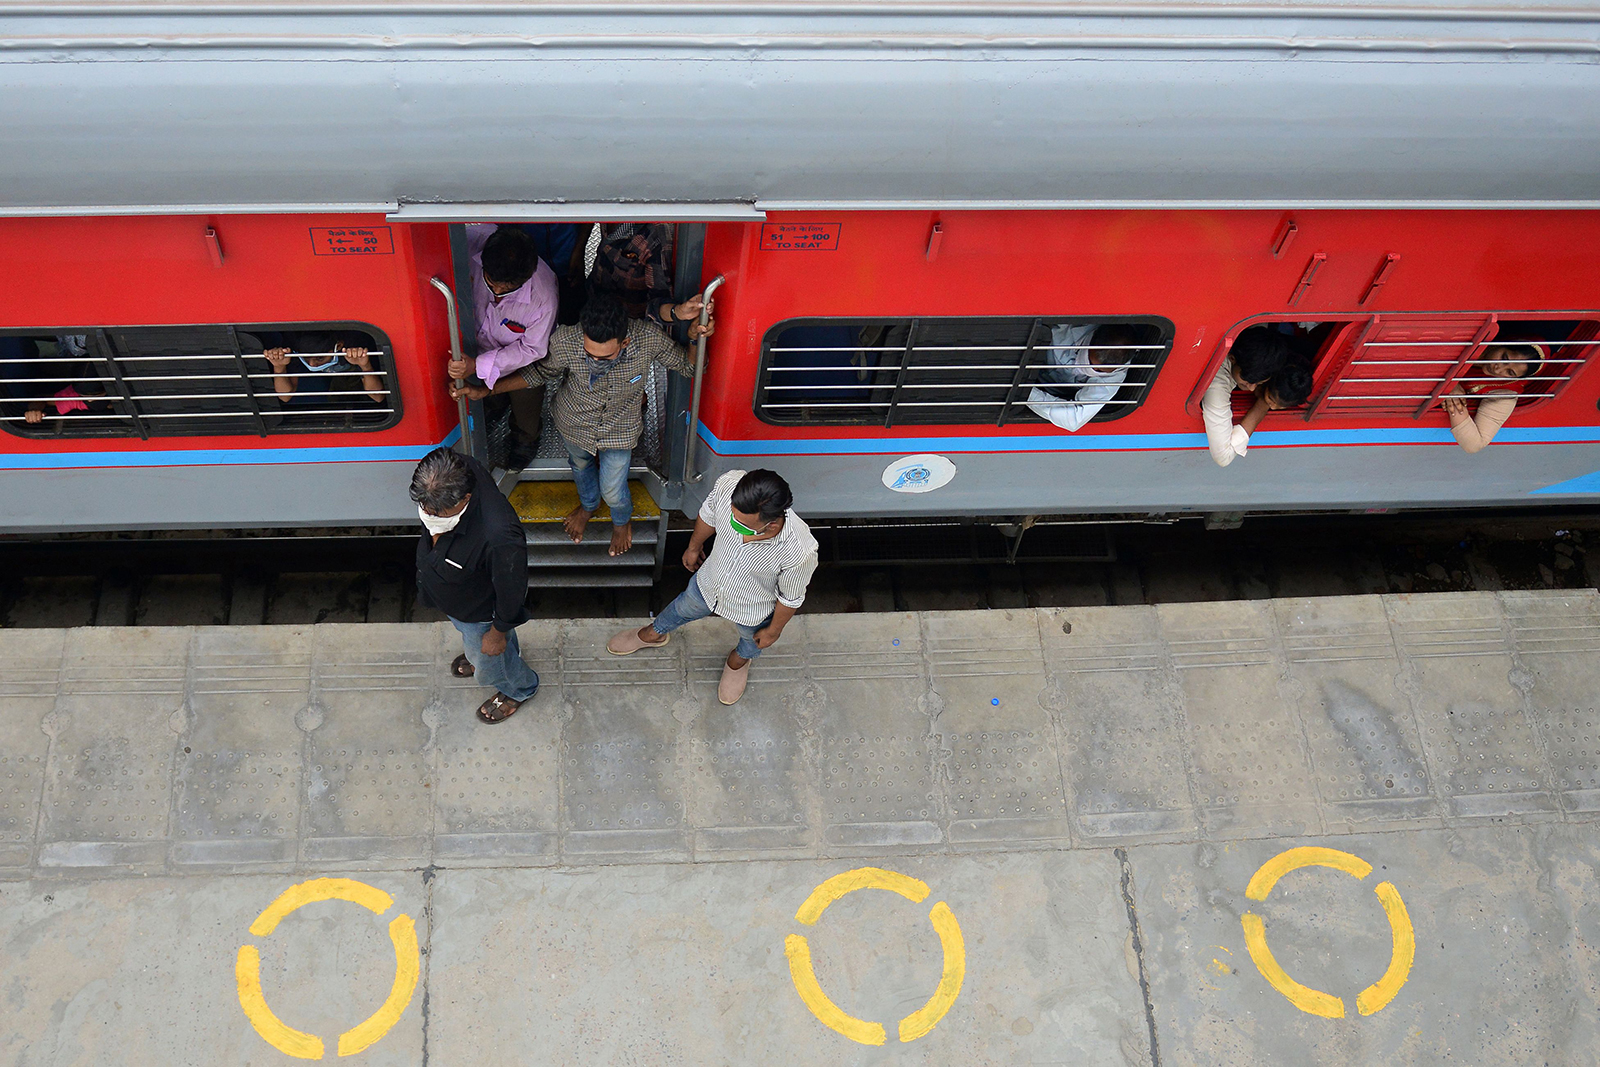 Passengers arrive from Mumbai at the railway station in Allahabad, India on May 30.